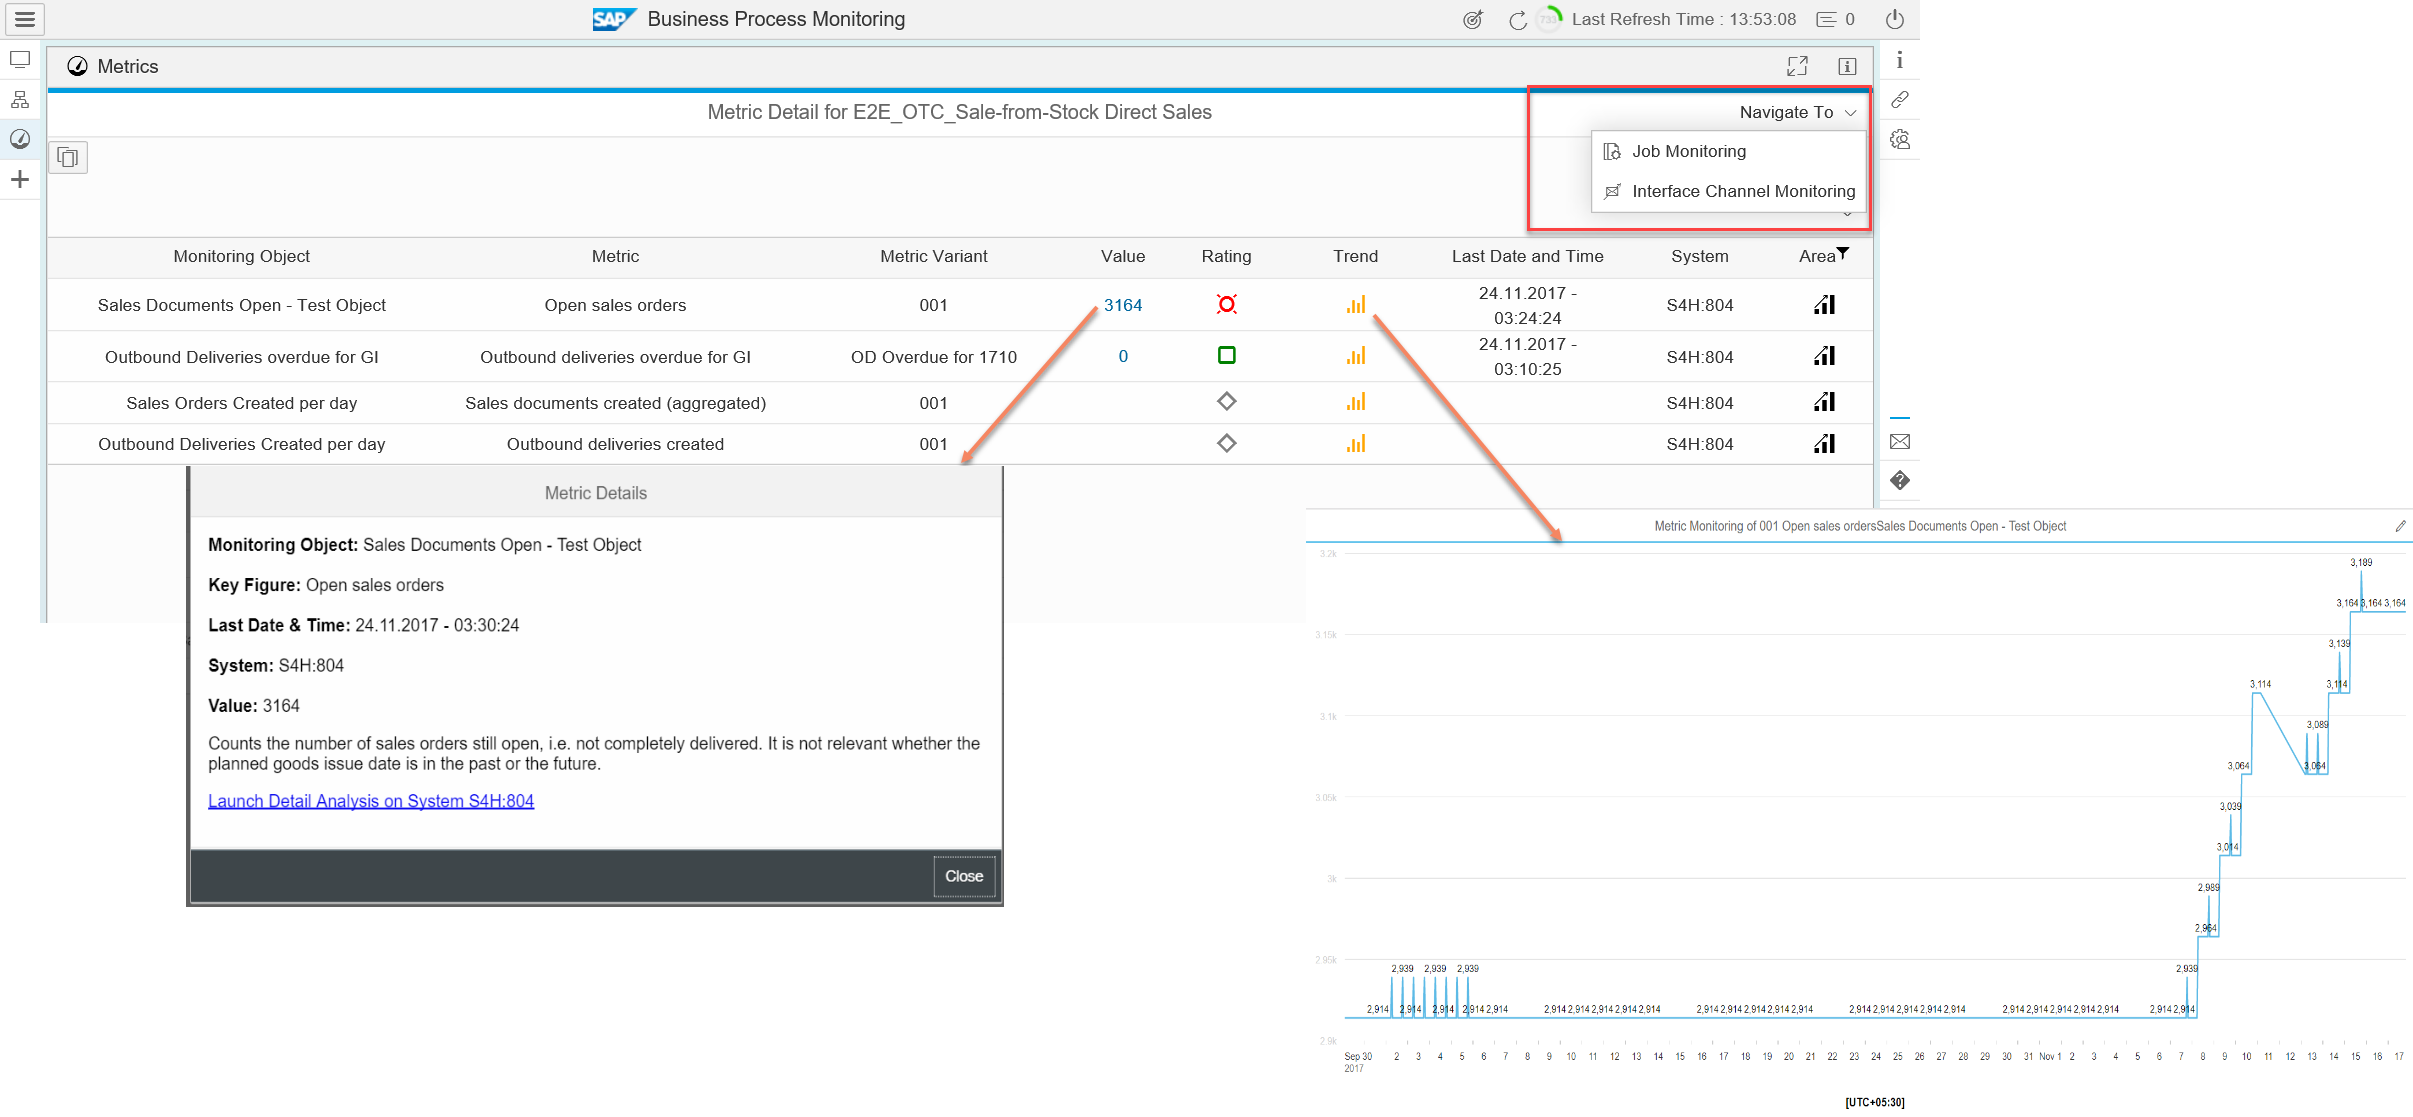 Business Process Monitoring from 7.2 SPS 5 and SPS 6